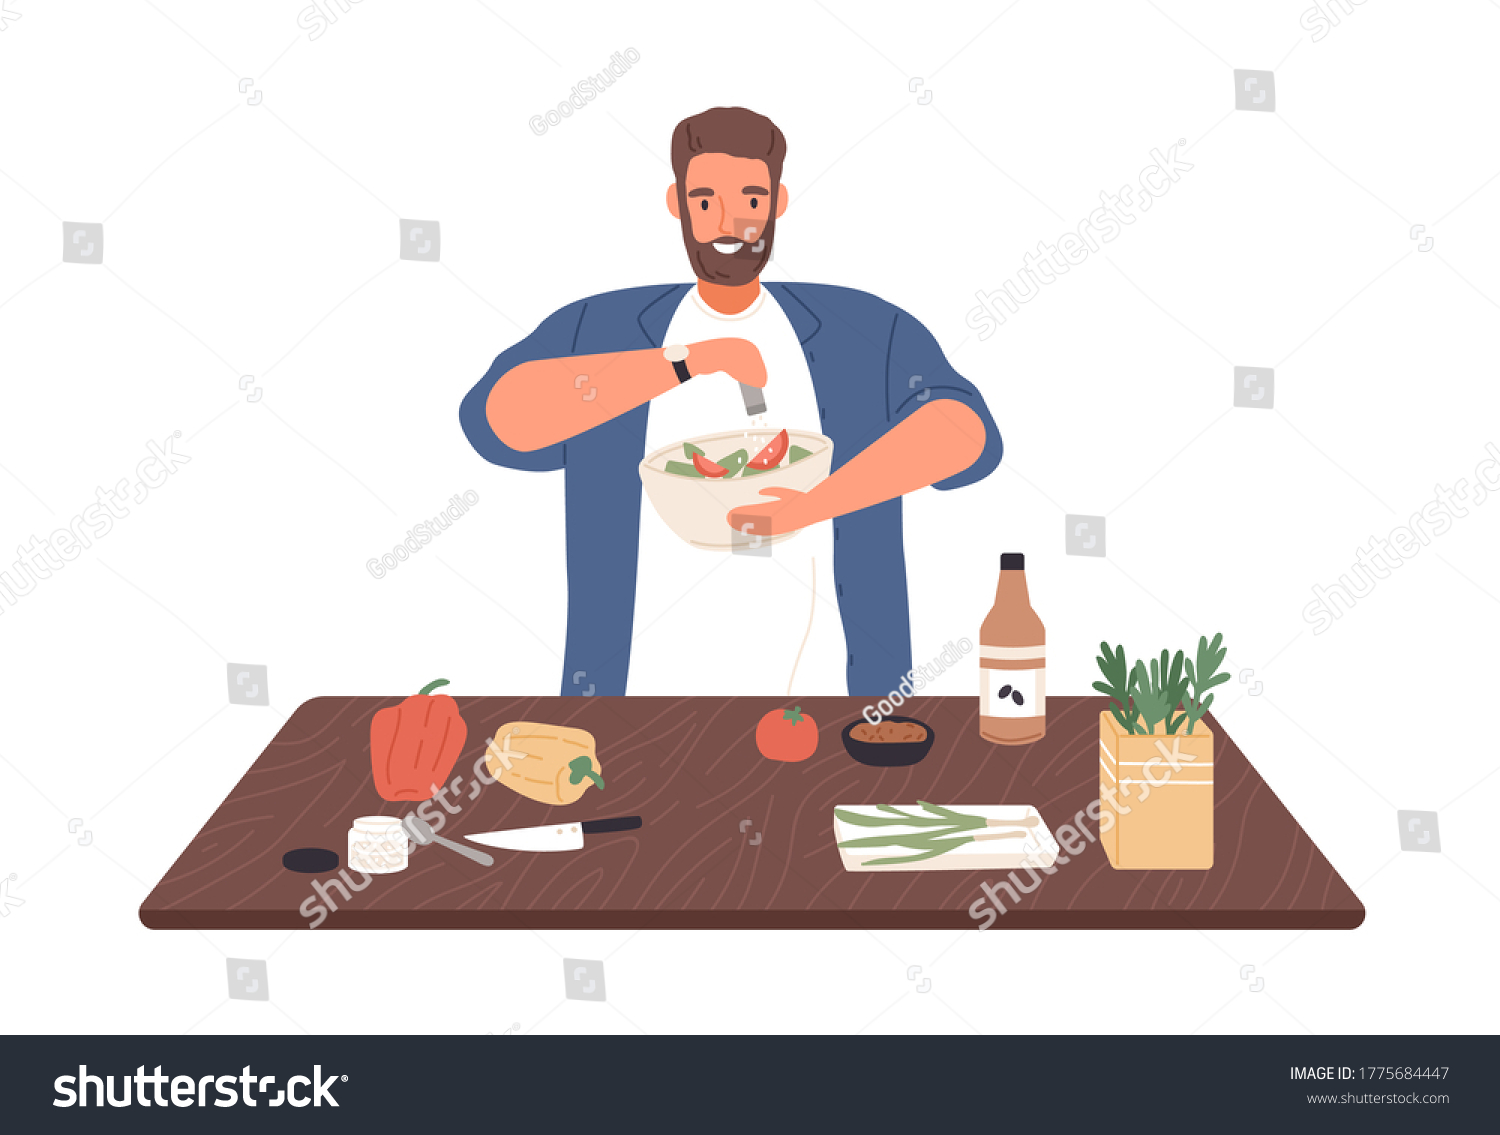 Smiling man on diet cook vegetable salad on kitchen table vector flat illustration. Male apply salt to vegetarian healthy food isolated on white. Guy preparing dinner or lunch with spices and herbs #1775684447